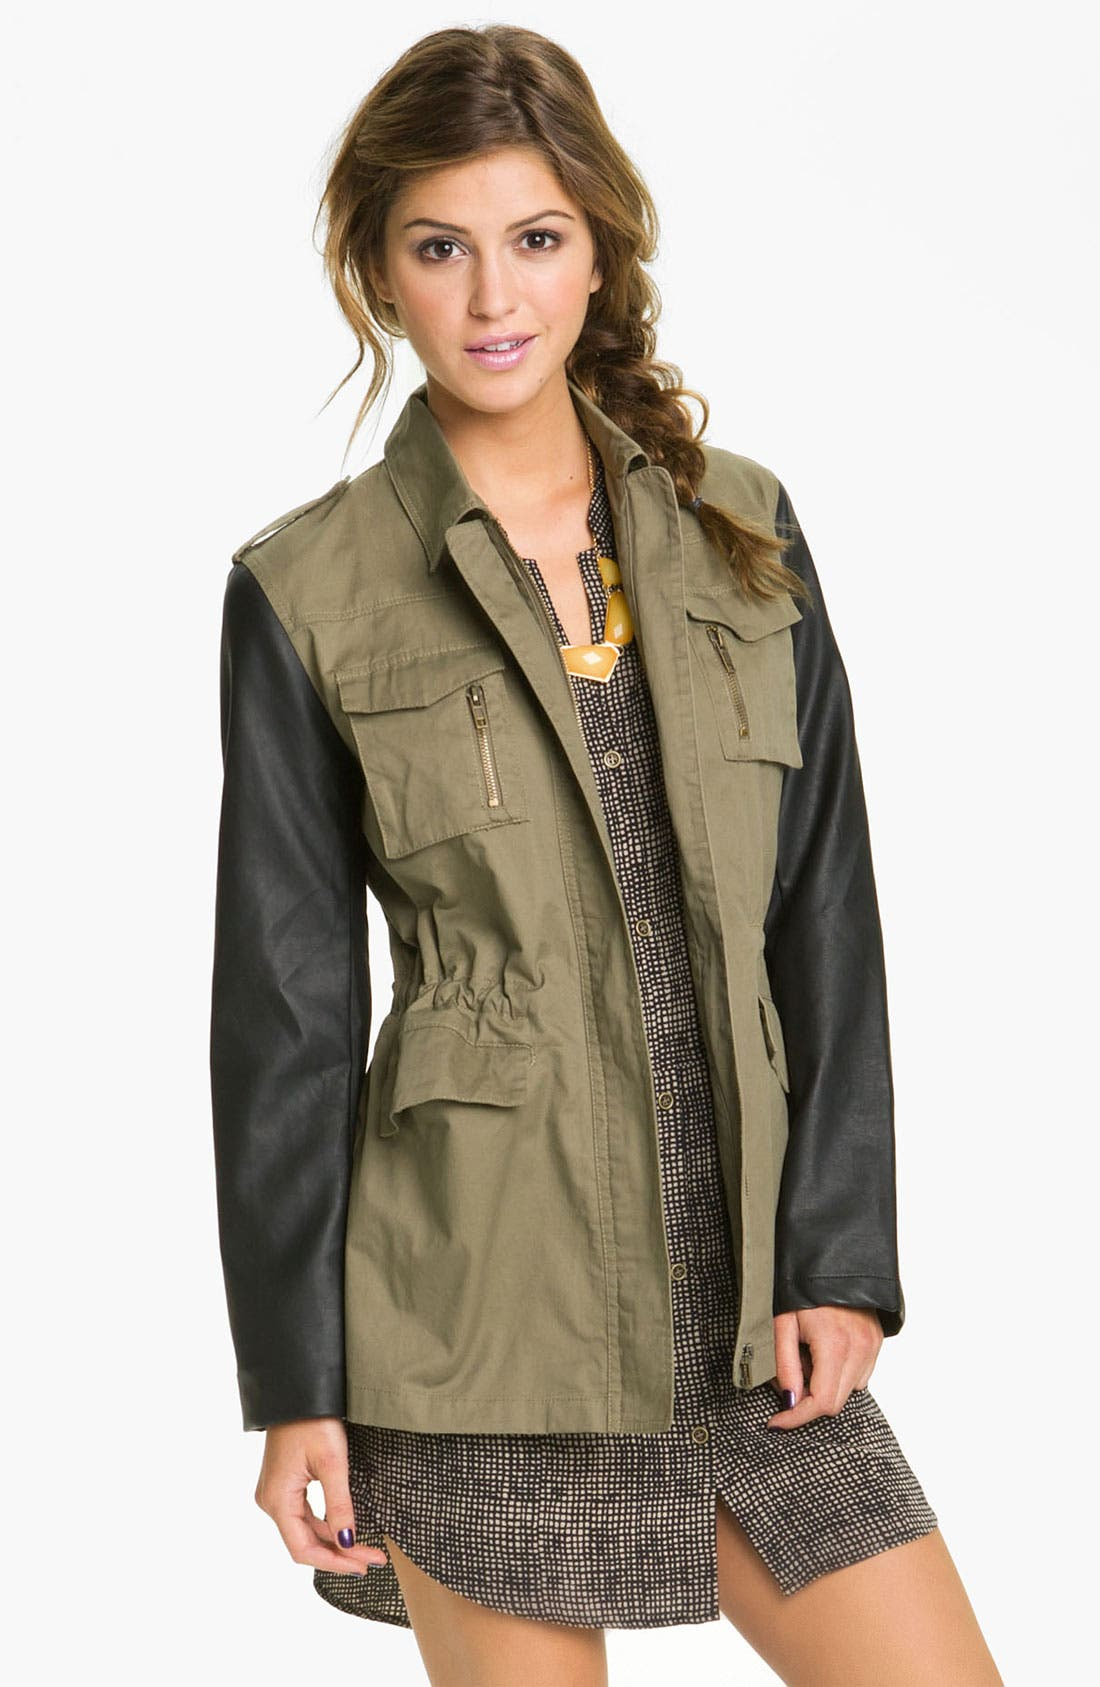 BLU PEPPER Faux Leather Sleeve Utility Jacket, Main, color, 331